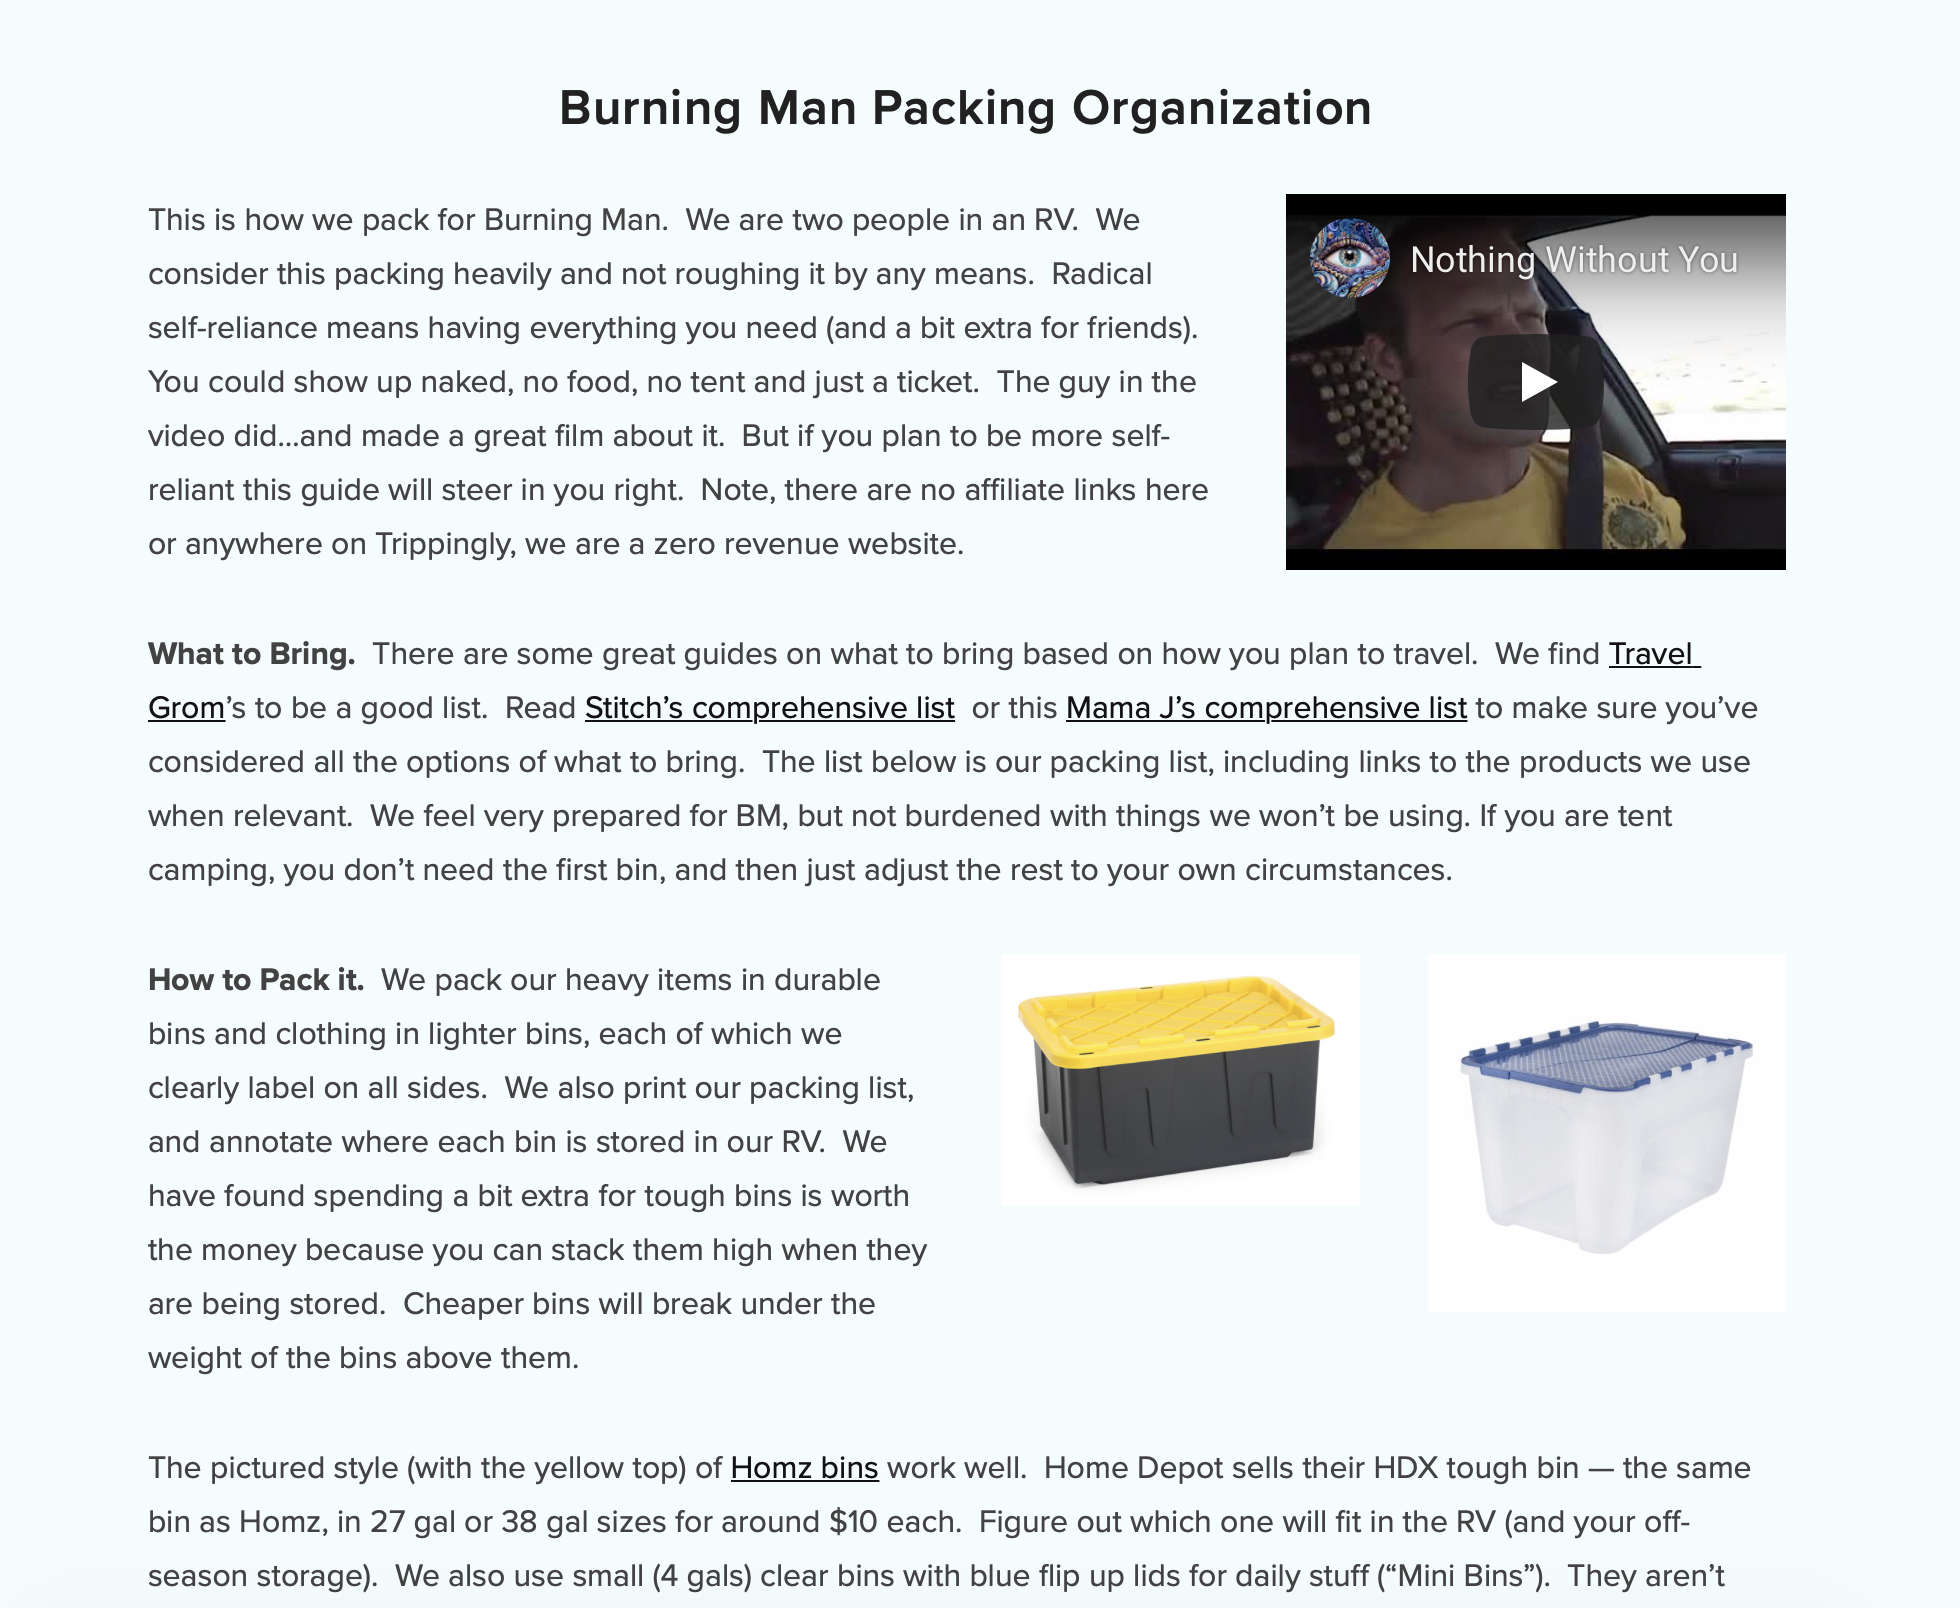 How to Pack for Burning Man -